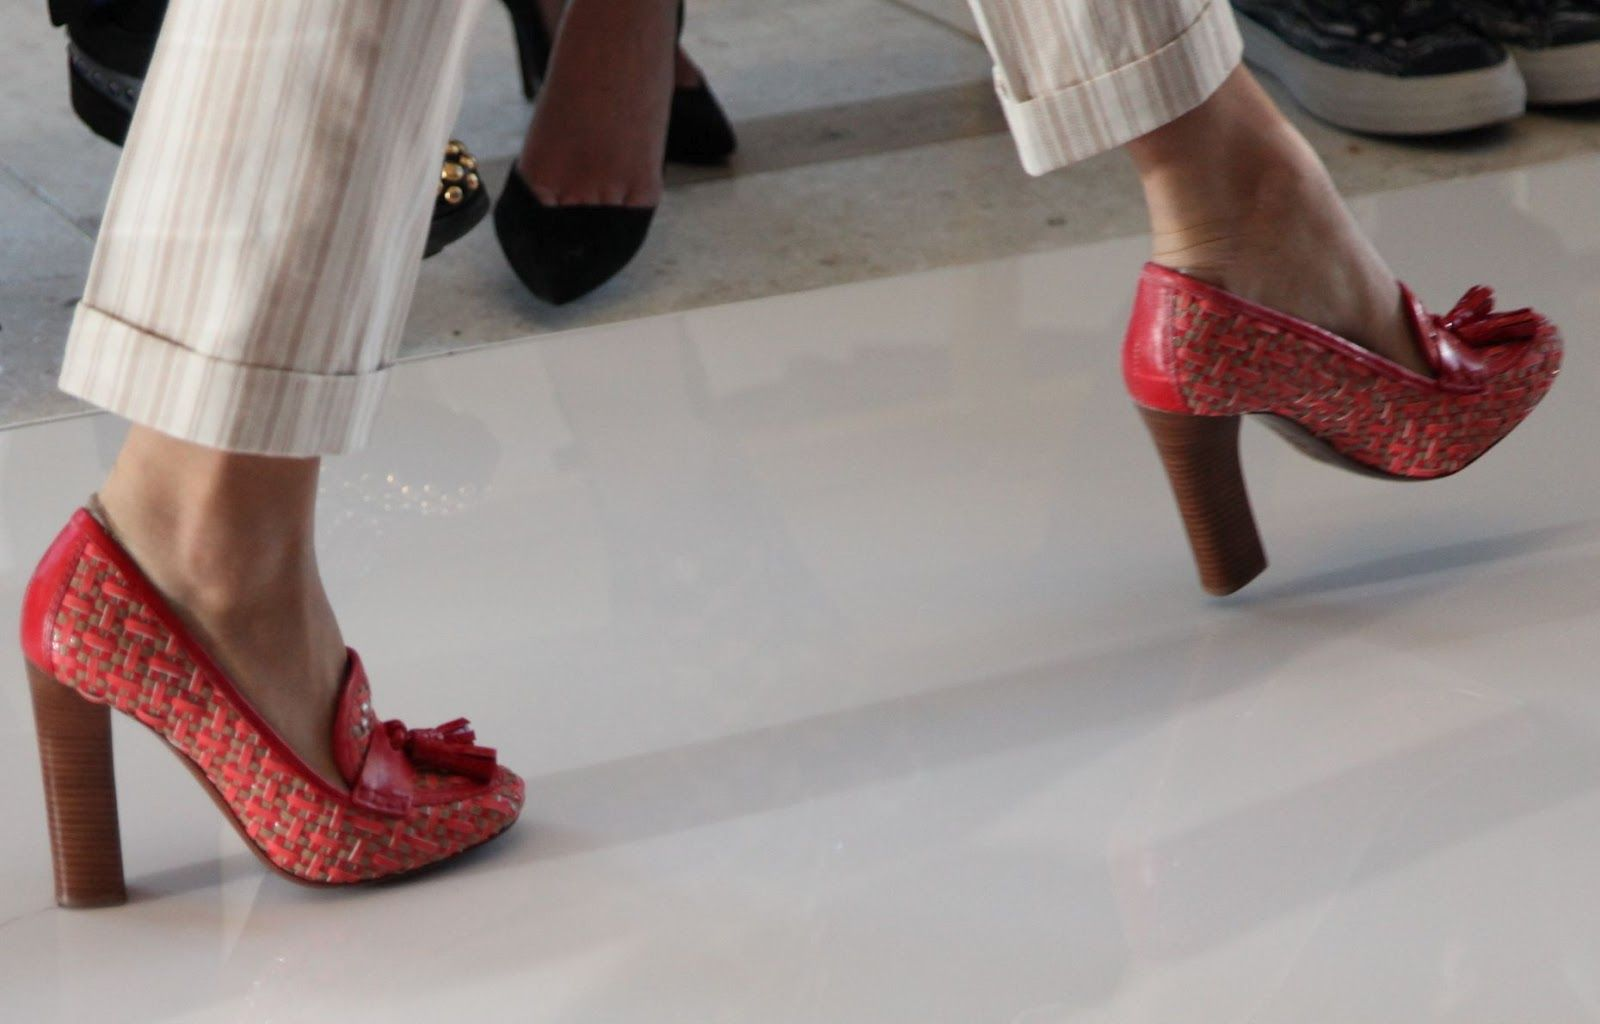 Tory Burch Spring 2013. Photo courtesy of @Habitually Chic